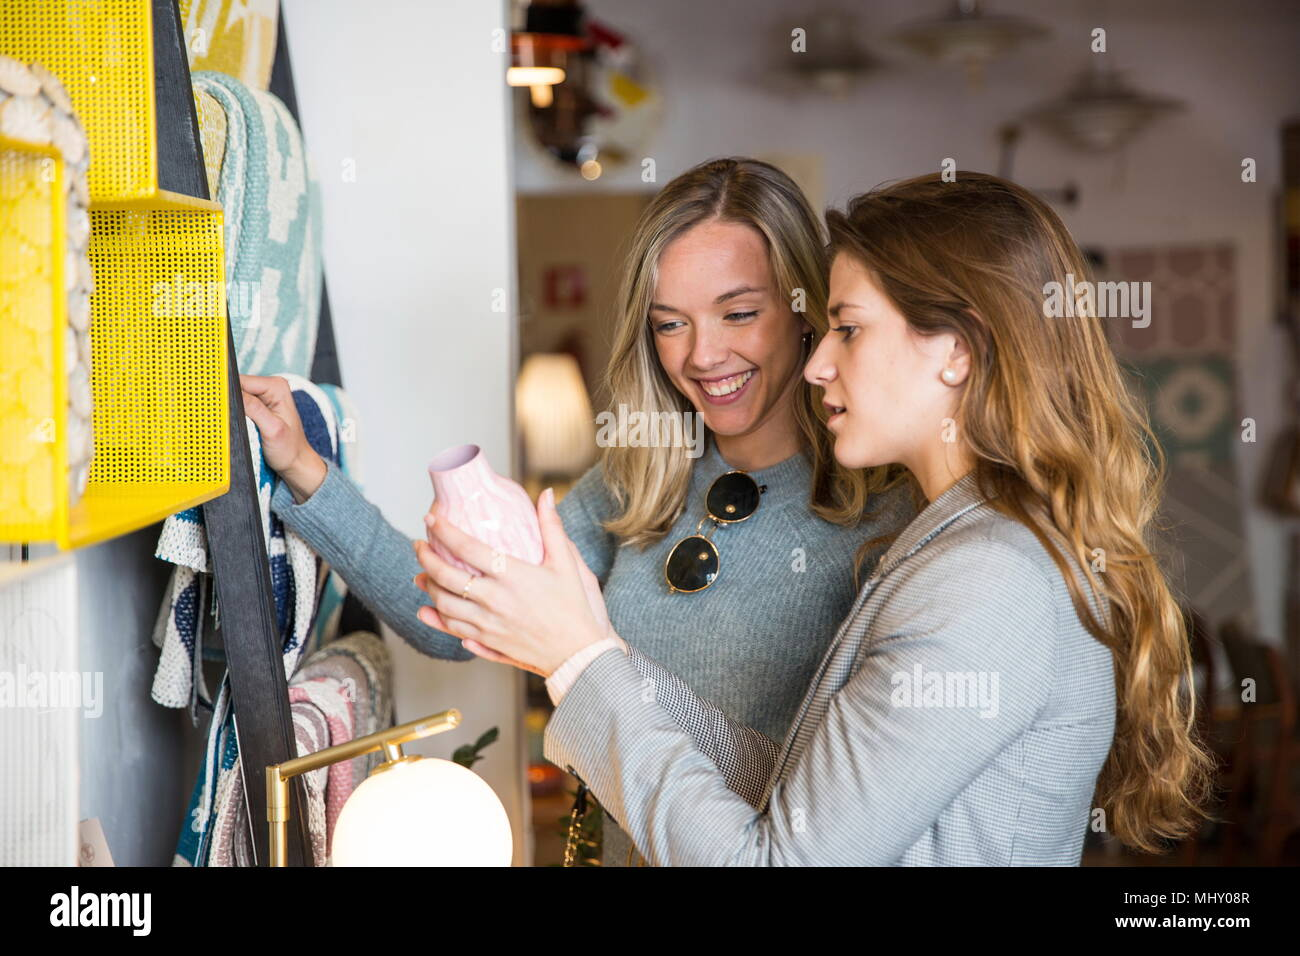 Friends shopping in second hand shop - Stock Image